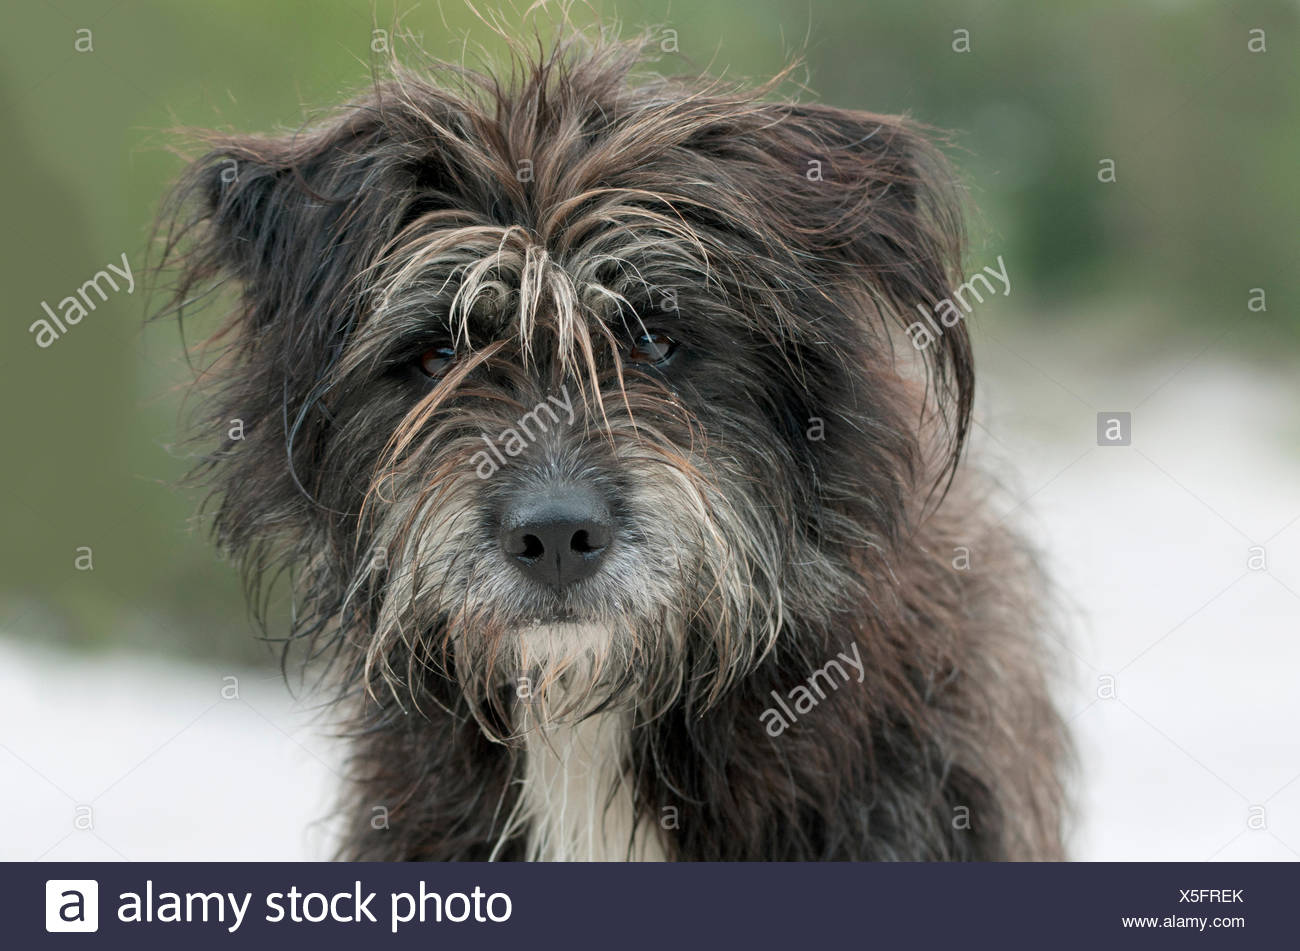 Pyrenean Shepherd, Berger des Pyrenees mixed breed (Canis lupus familiaris), portrait, Tyrol, Austria - Stock Image